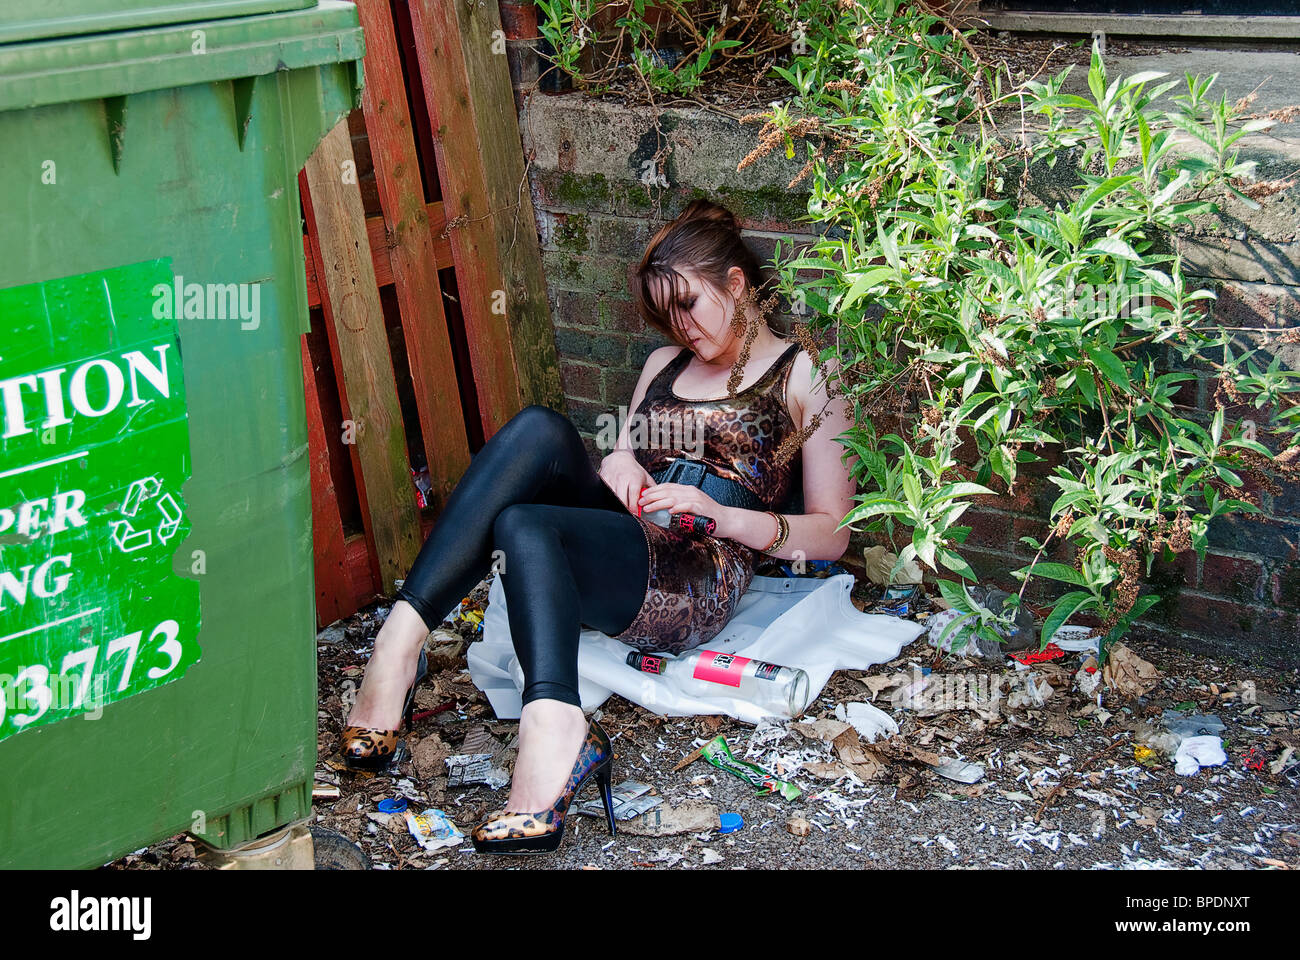 Drunk Stock Photos Amp Drunk Stock Images Alamy